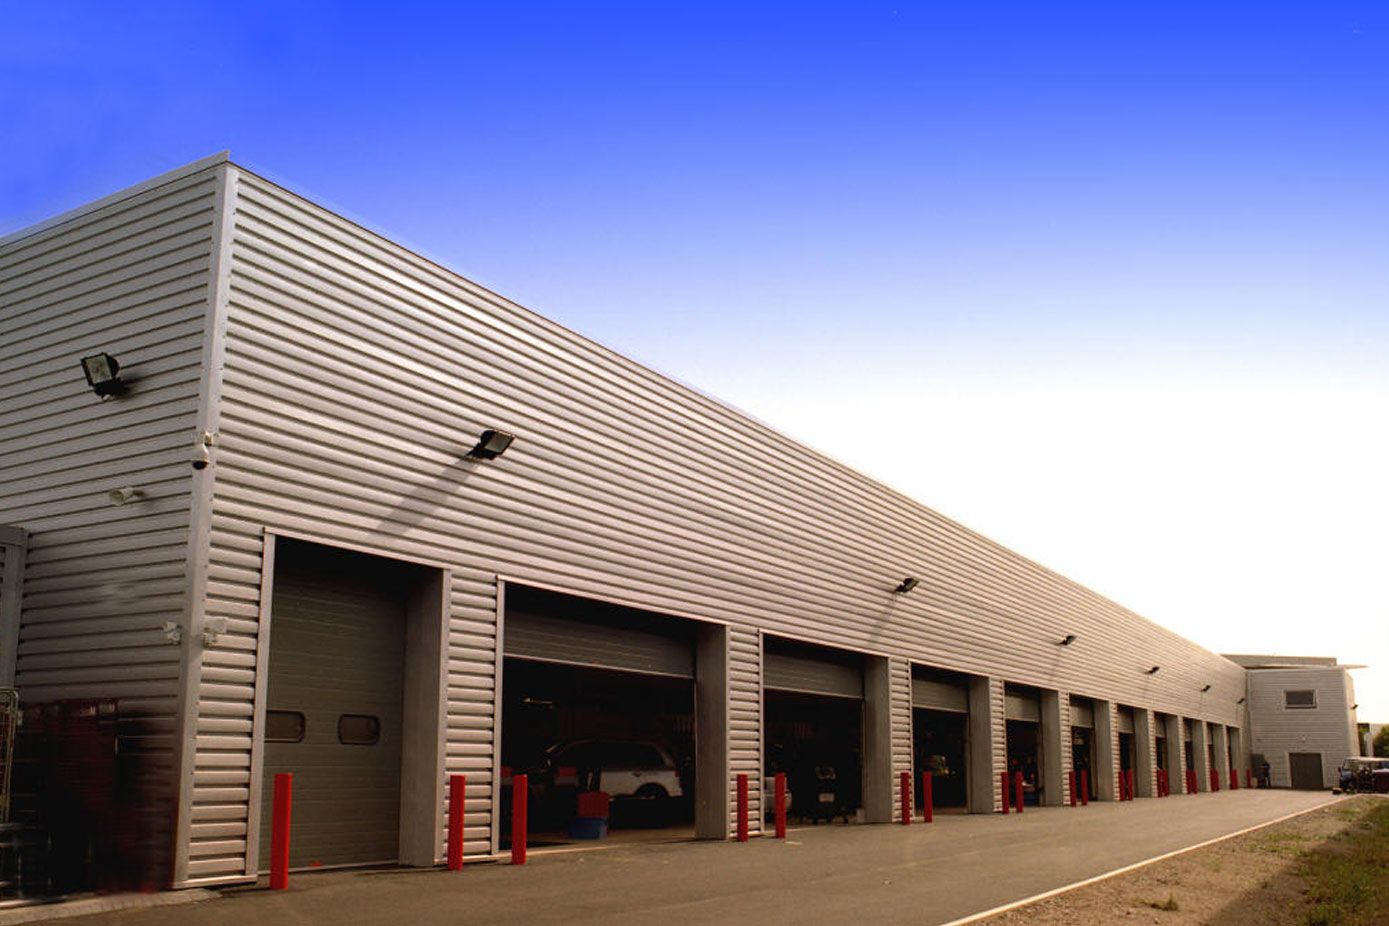 Warehouse roofing project